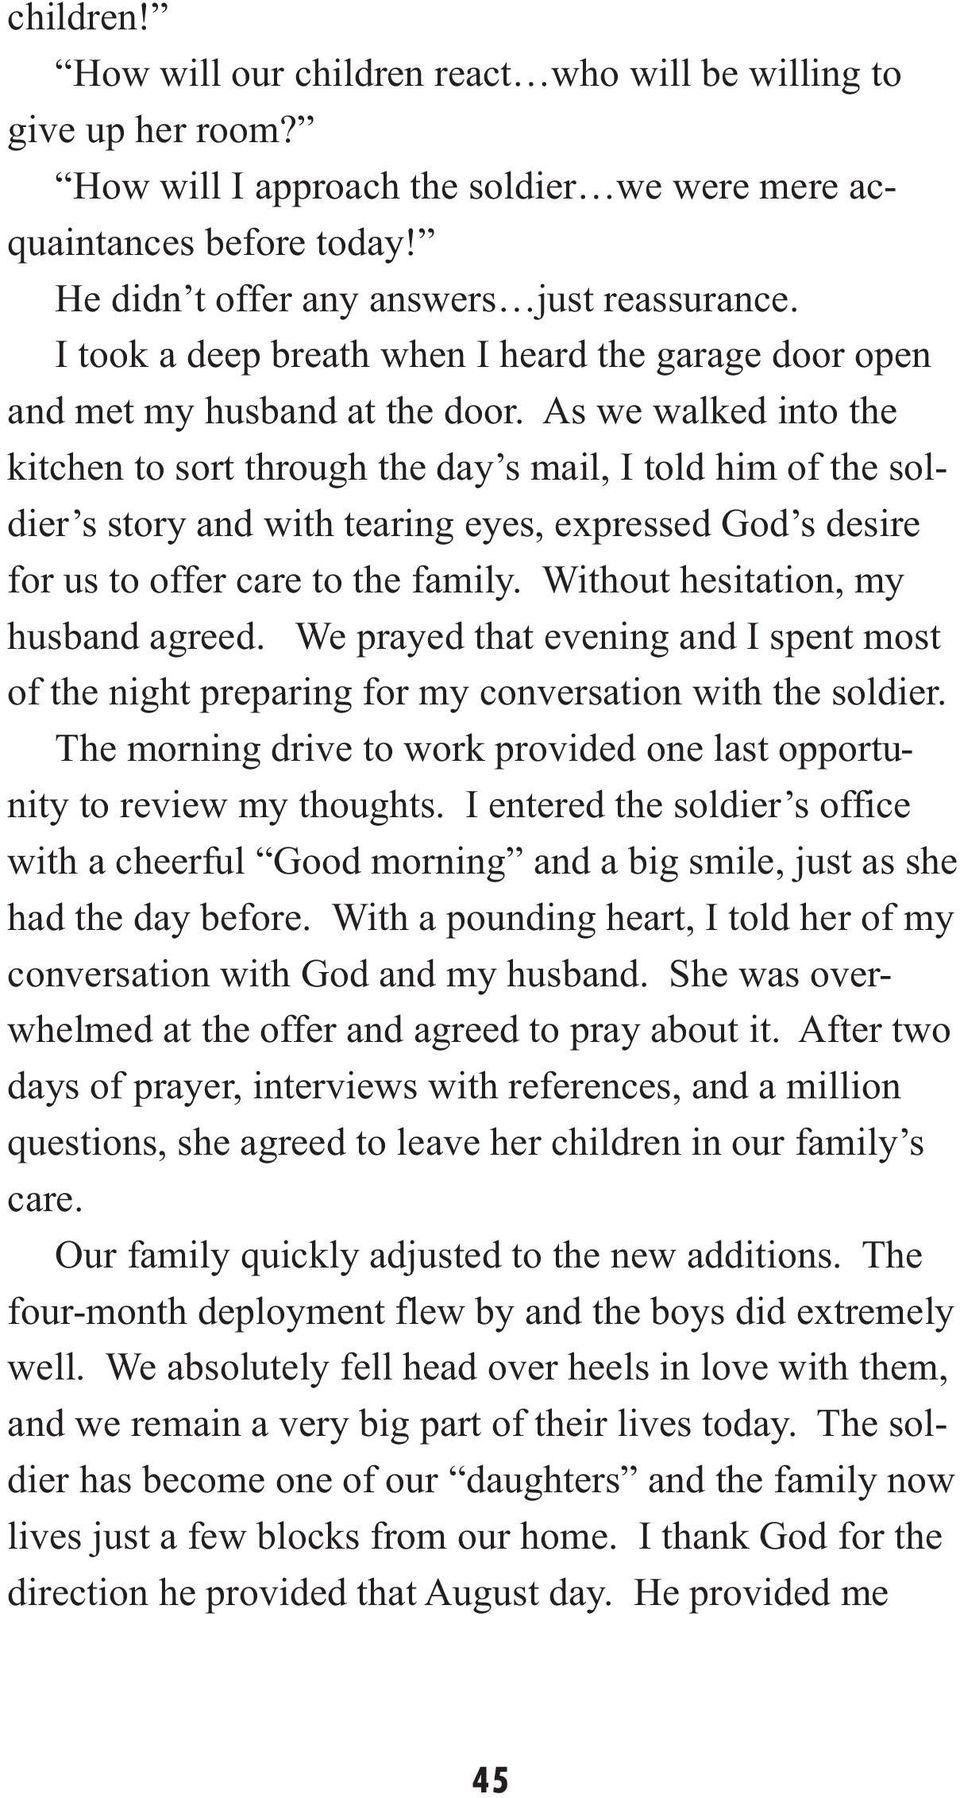 As we walked into the kitchen to sort through the day s mail, I told him of the soldier s story and with tearing eyes, expressed God s desire for us to offer care to the family.